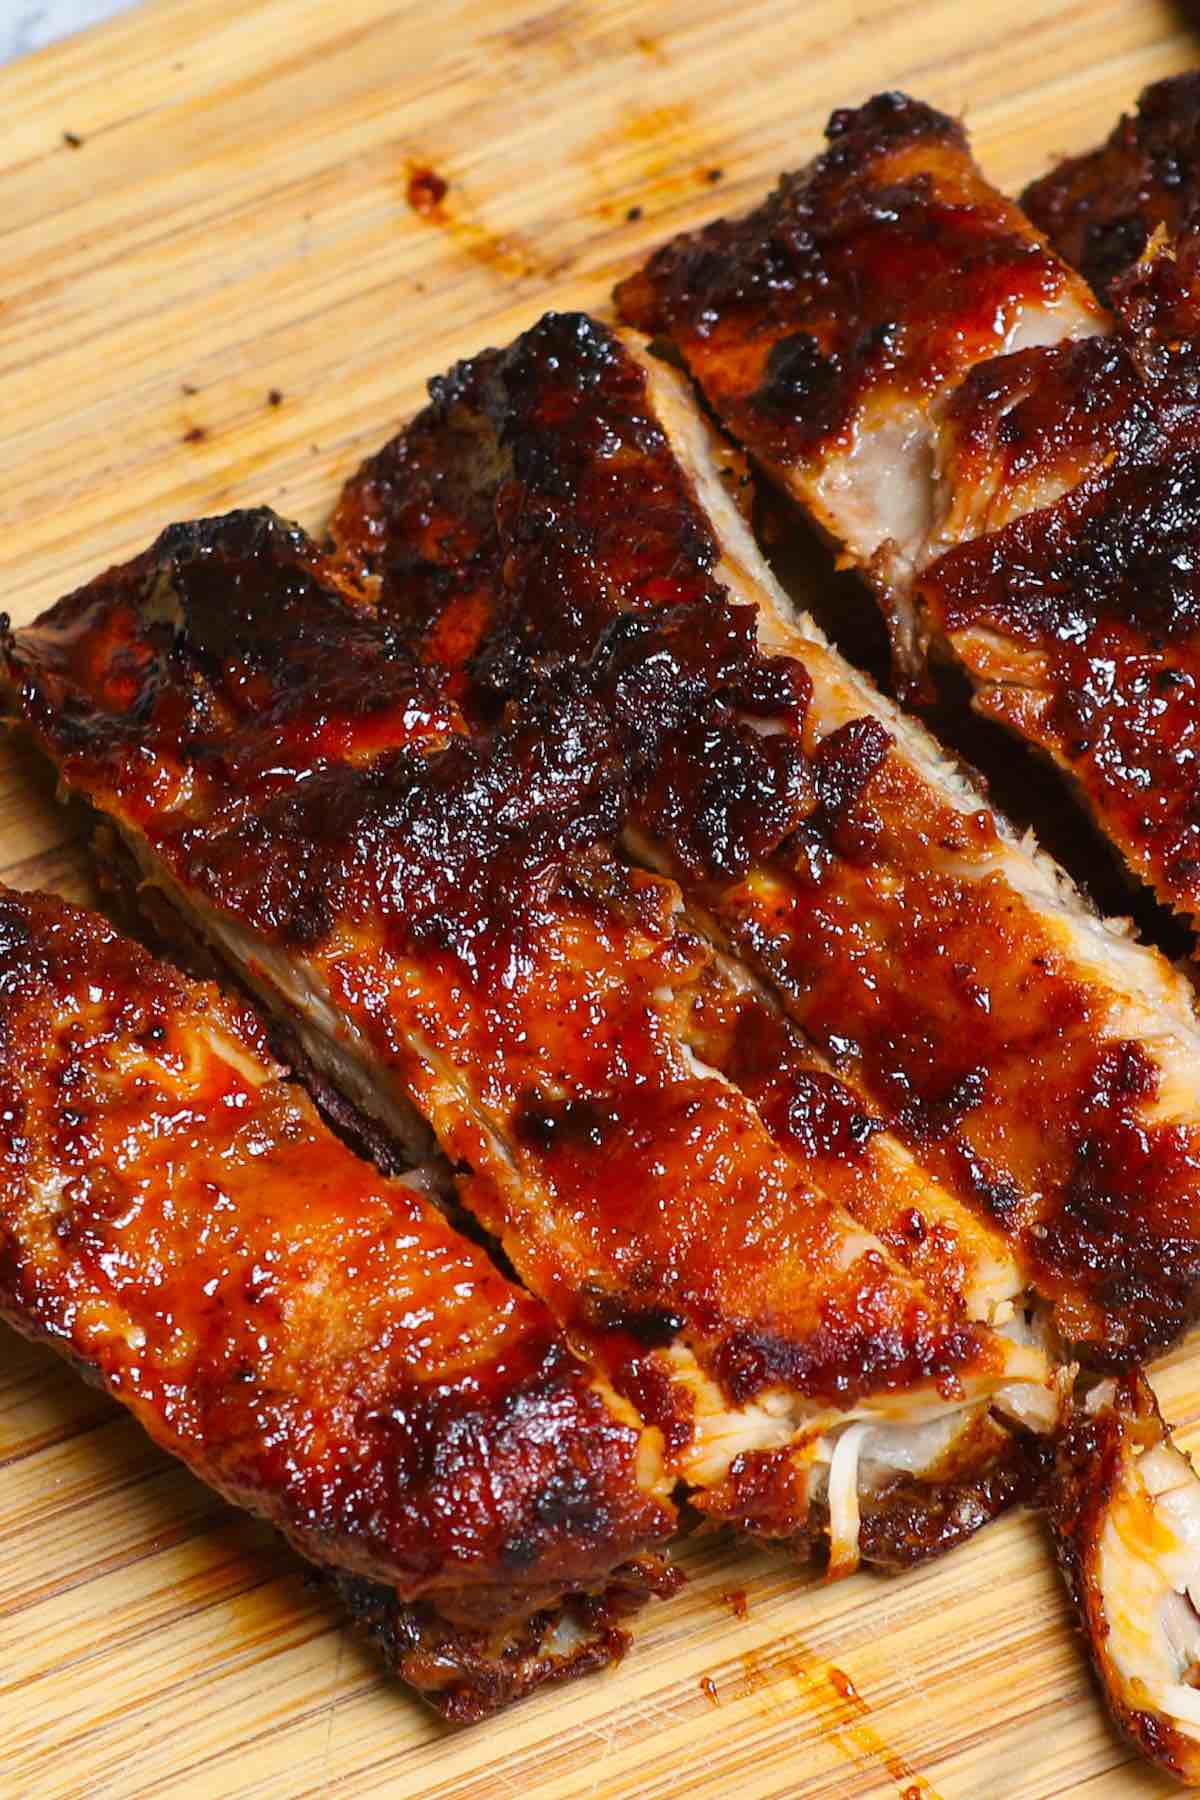 When you think of BBQ Ribs, you can easily picture those hot summer days with family and friends at a barbeque. Great side dishes will take your ribs experience to the next level. From bread to salads to healthy side dish ideas, we've collected 15 best side dishes you can serve with ribs!